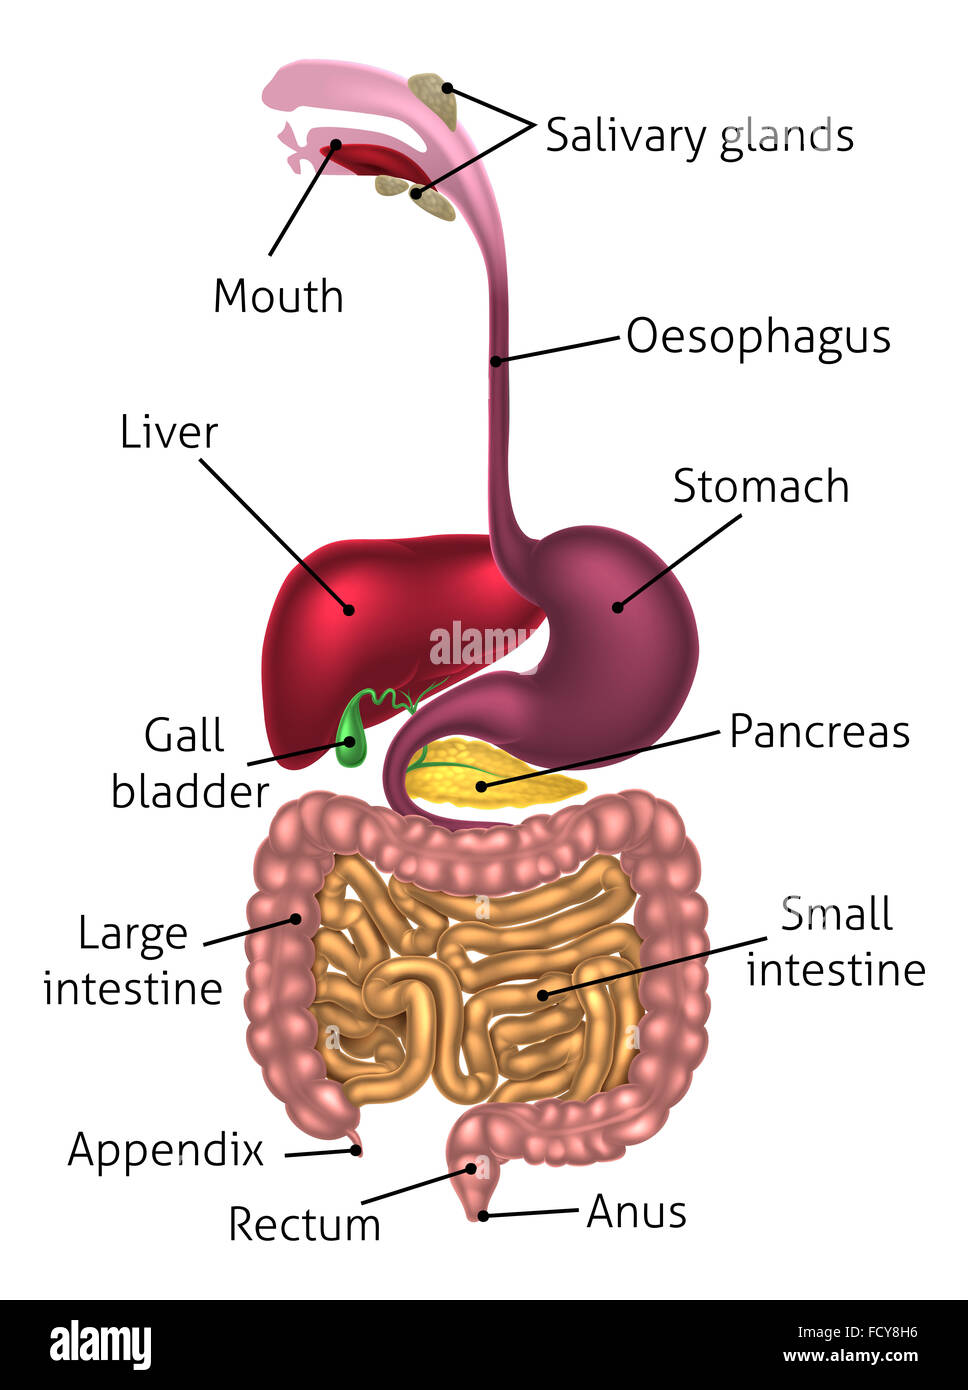 hight resolution of human digestive system digestive tract or alimentary canal including text labels stock image